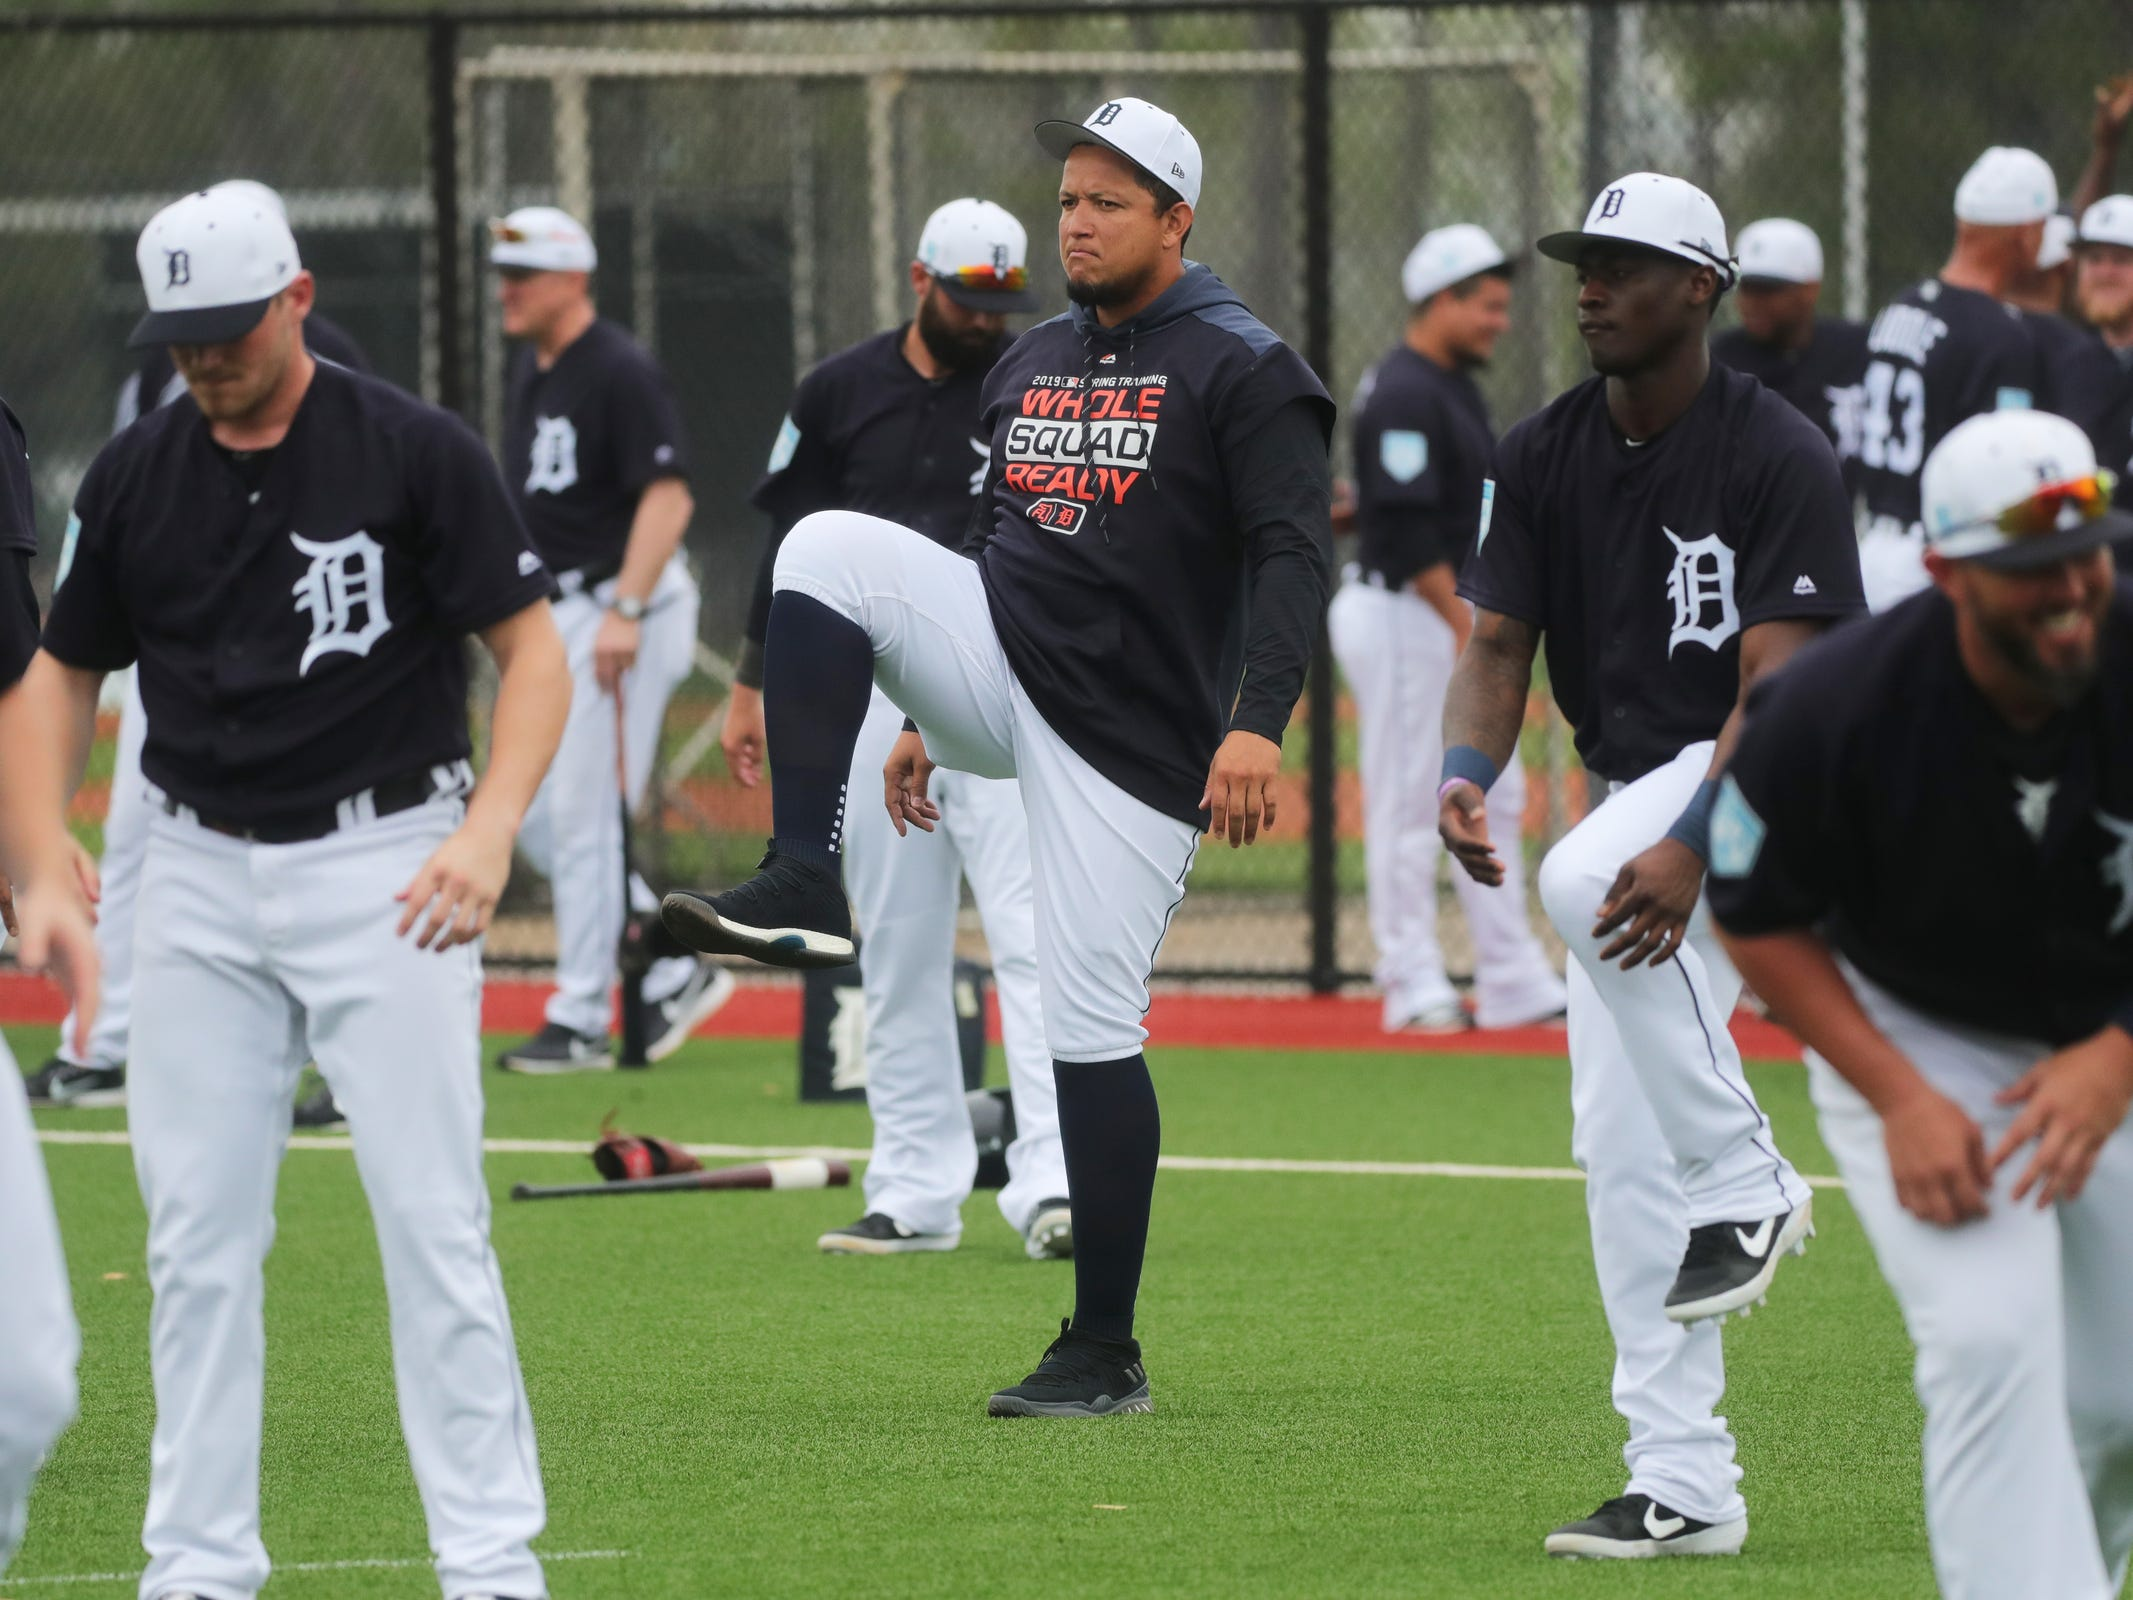 Tigers first baseman Miguel Cabrera stretches during the first full team spring training practice on Monday, Feb. 18, 2019, at Joker Marchant Stadium in Lakeland, Florida.